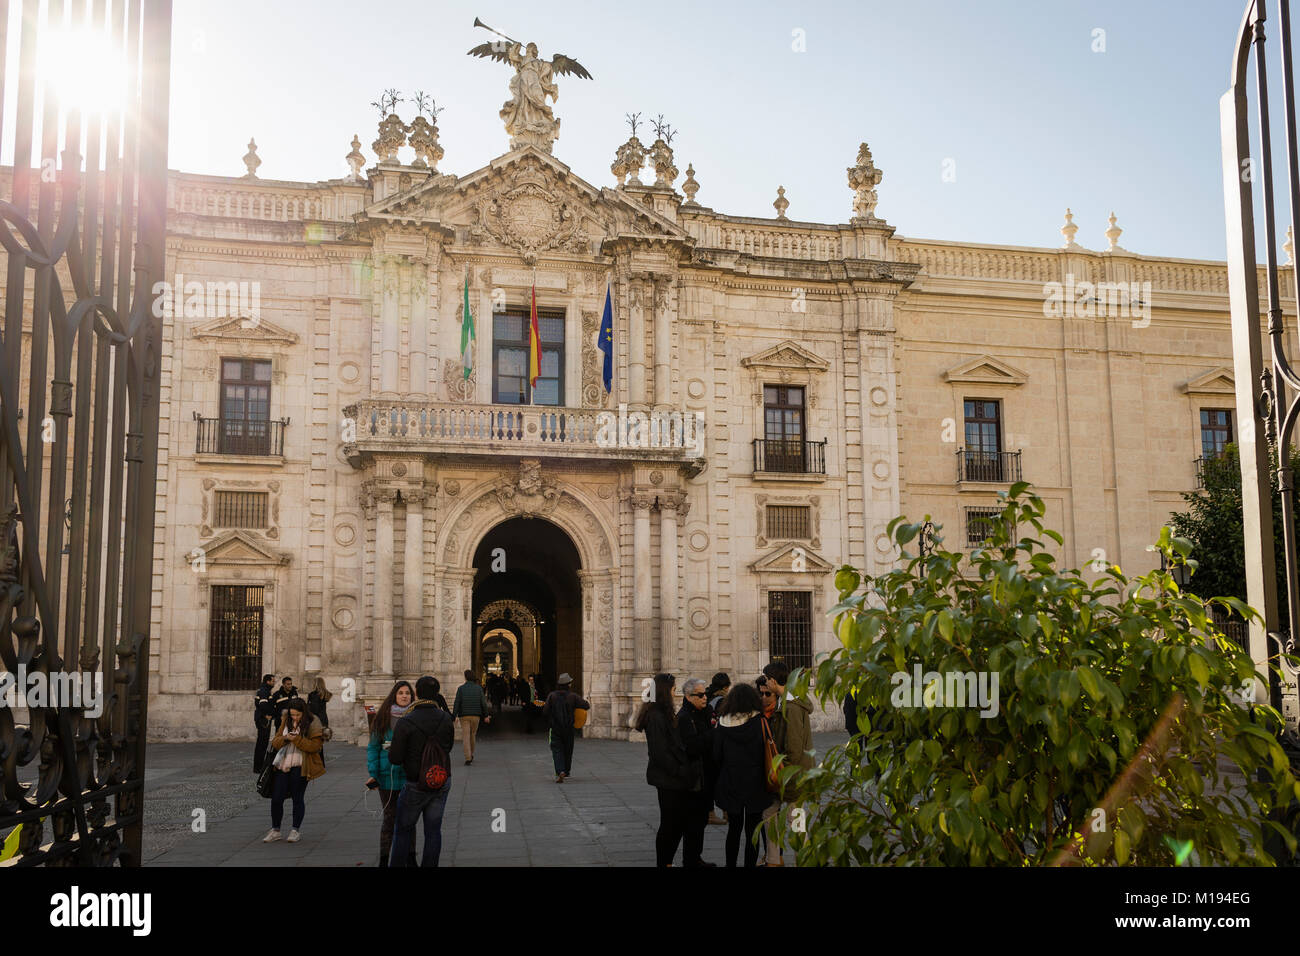 Real Fábrica de Tabacos - Universidad, Seville, Andalusia, Spain. - Stock Image